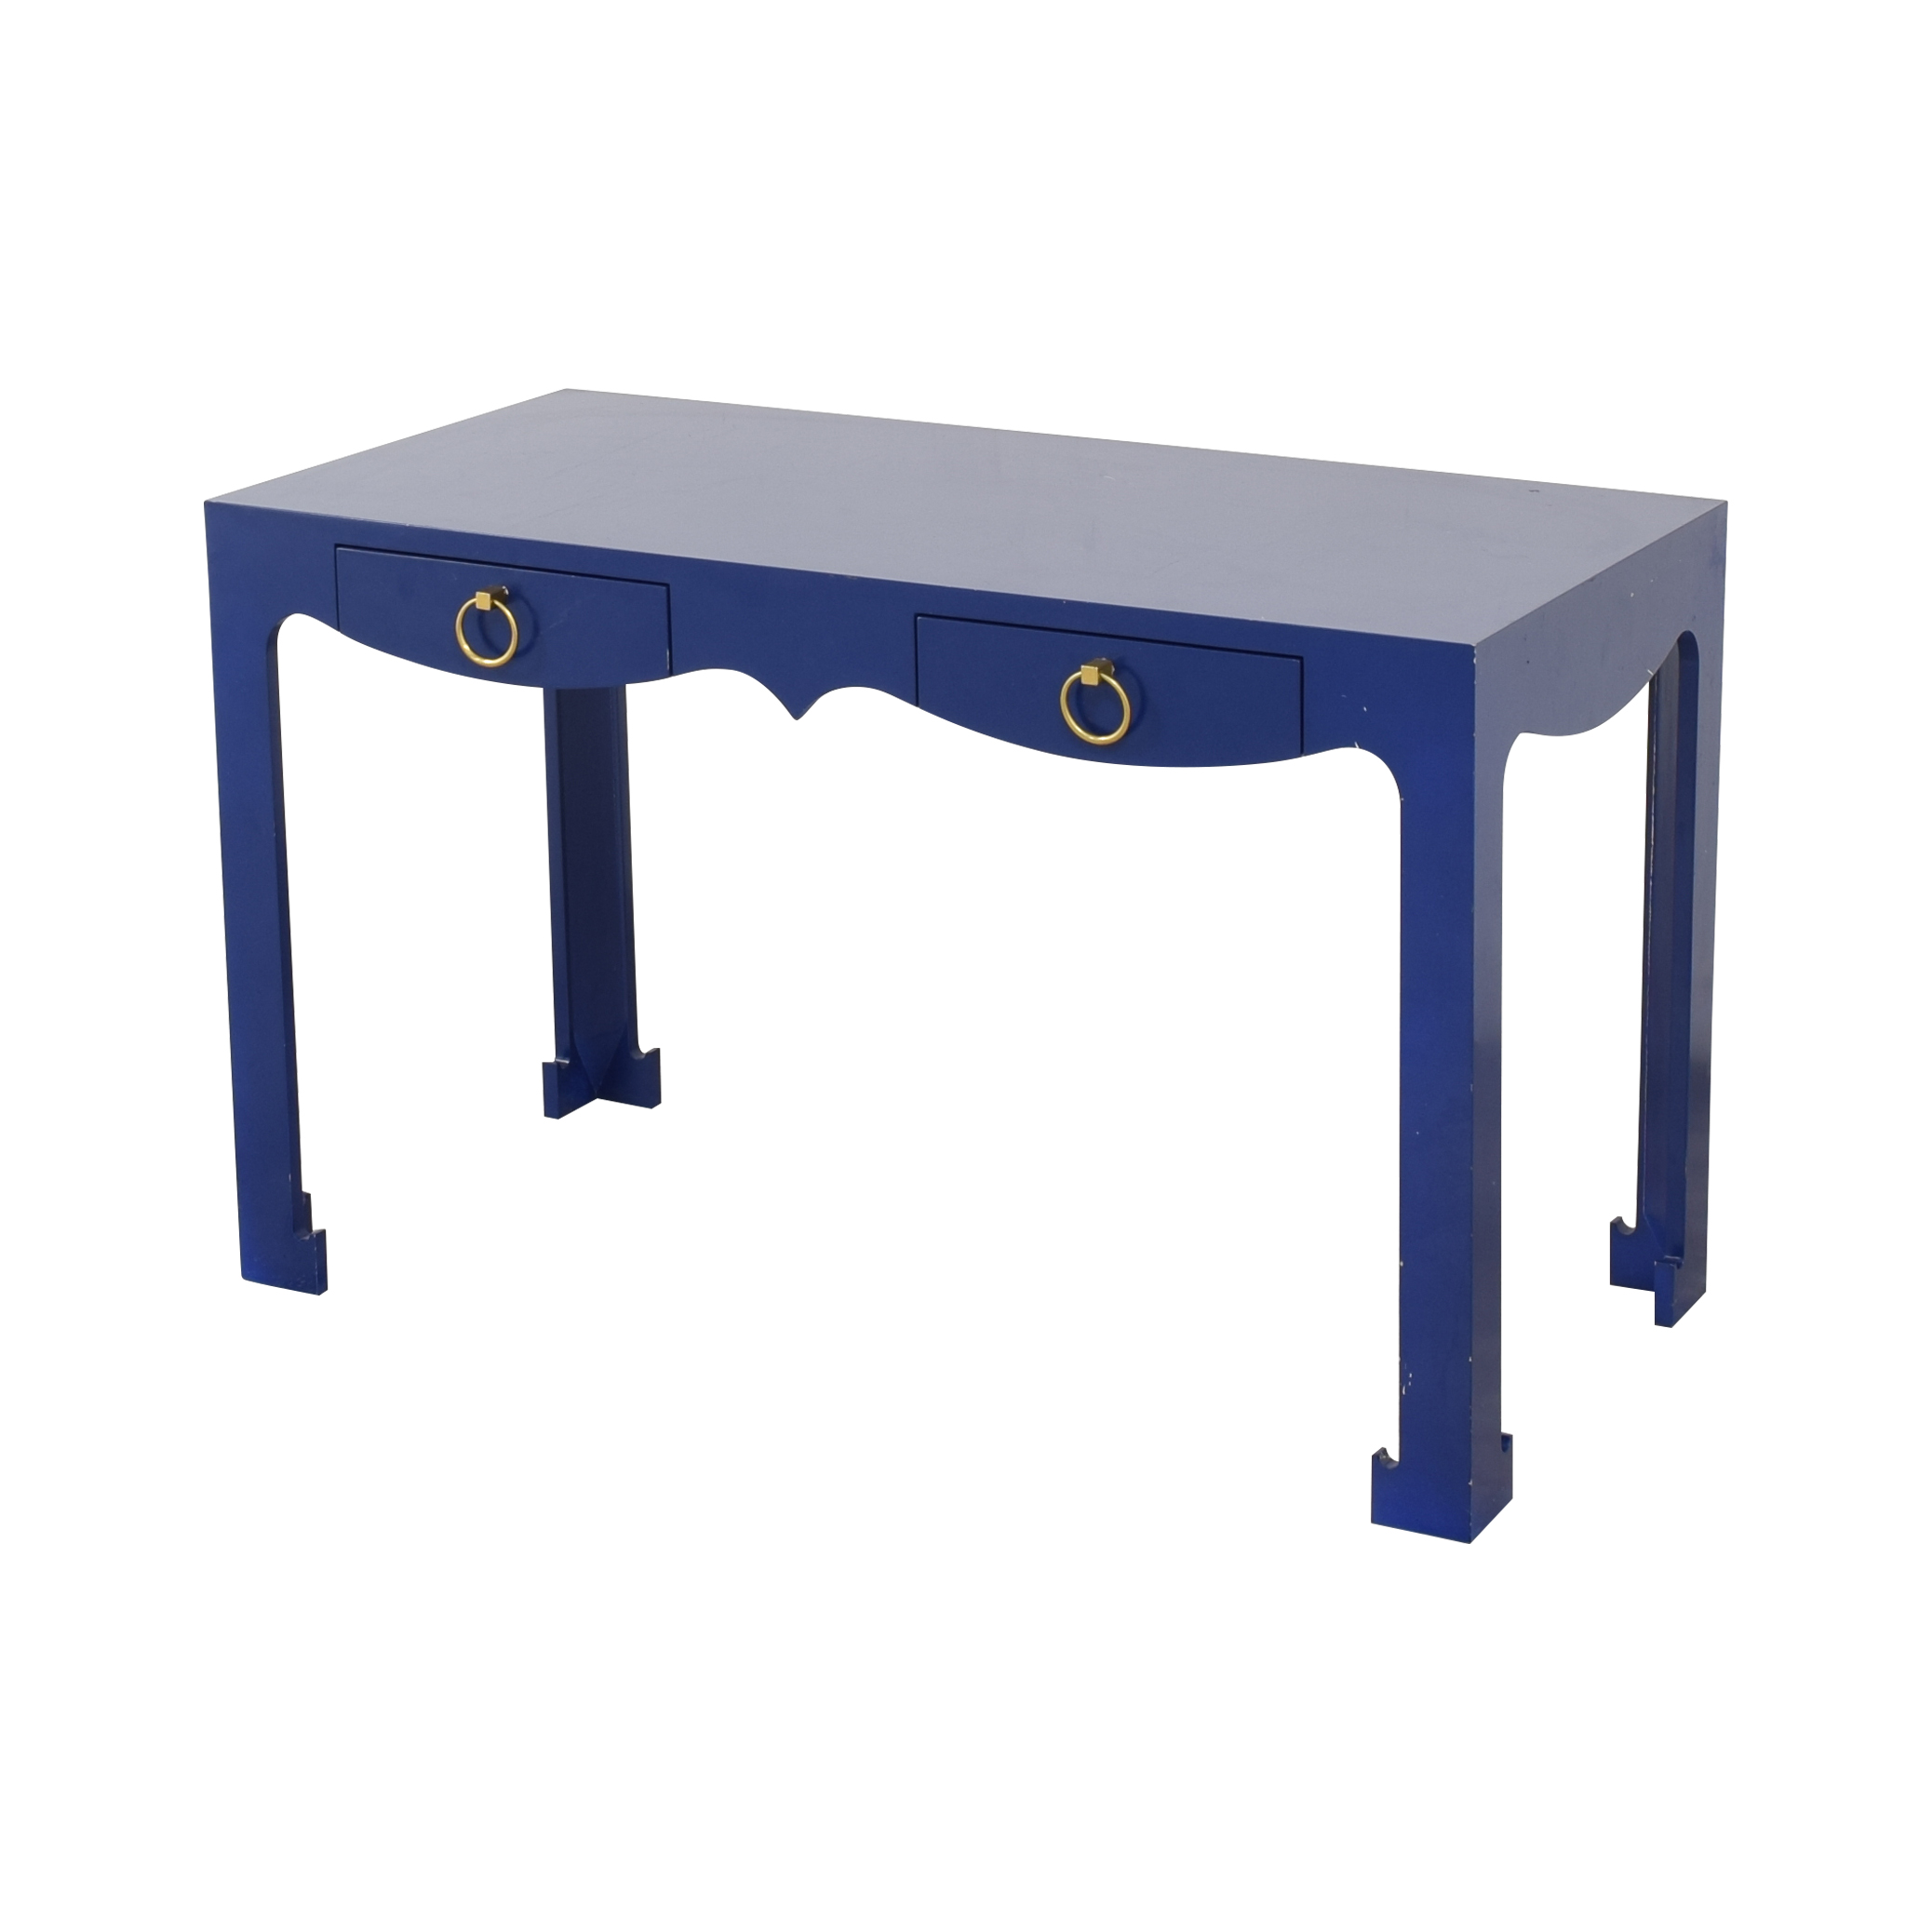 Blue Entry Table with Drawers